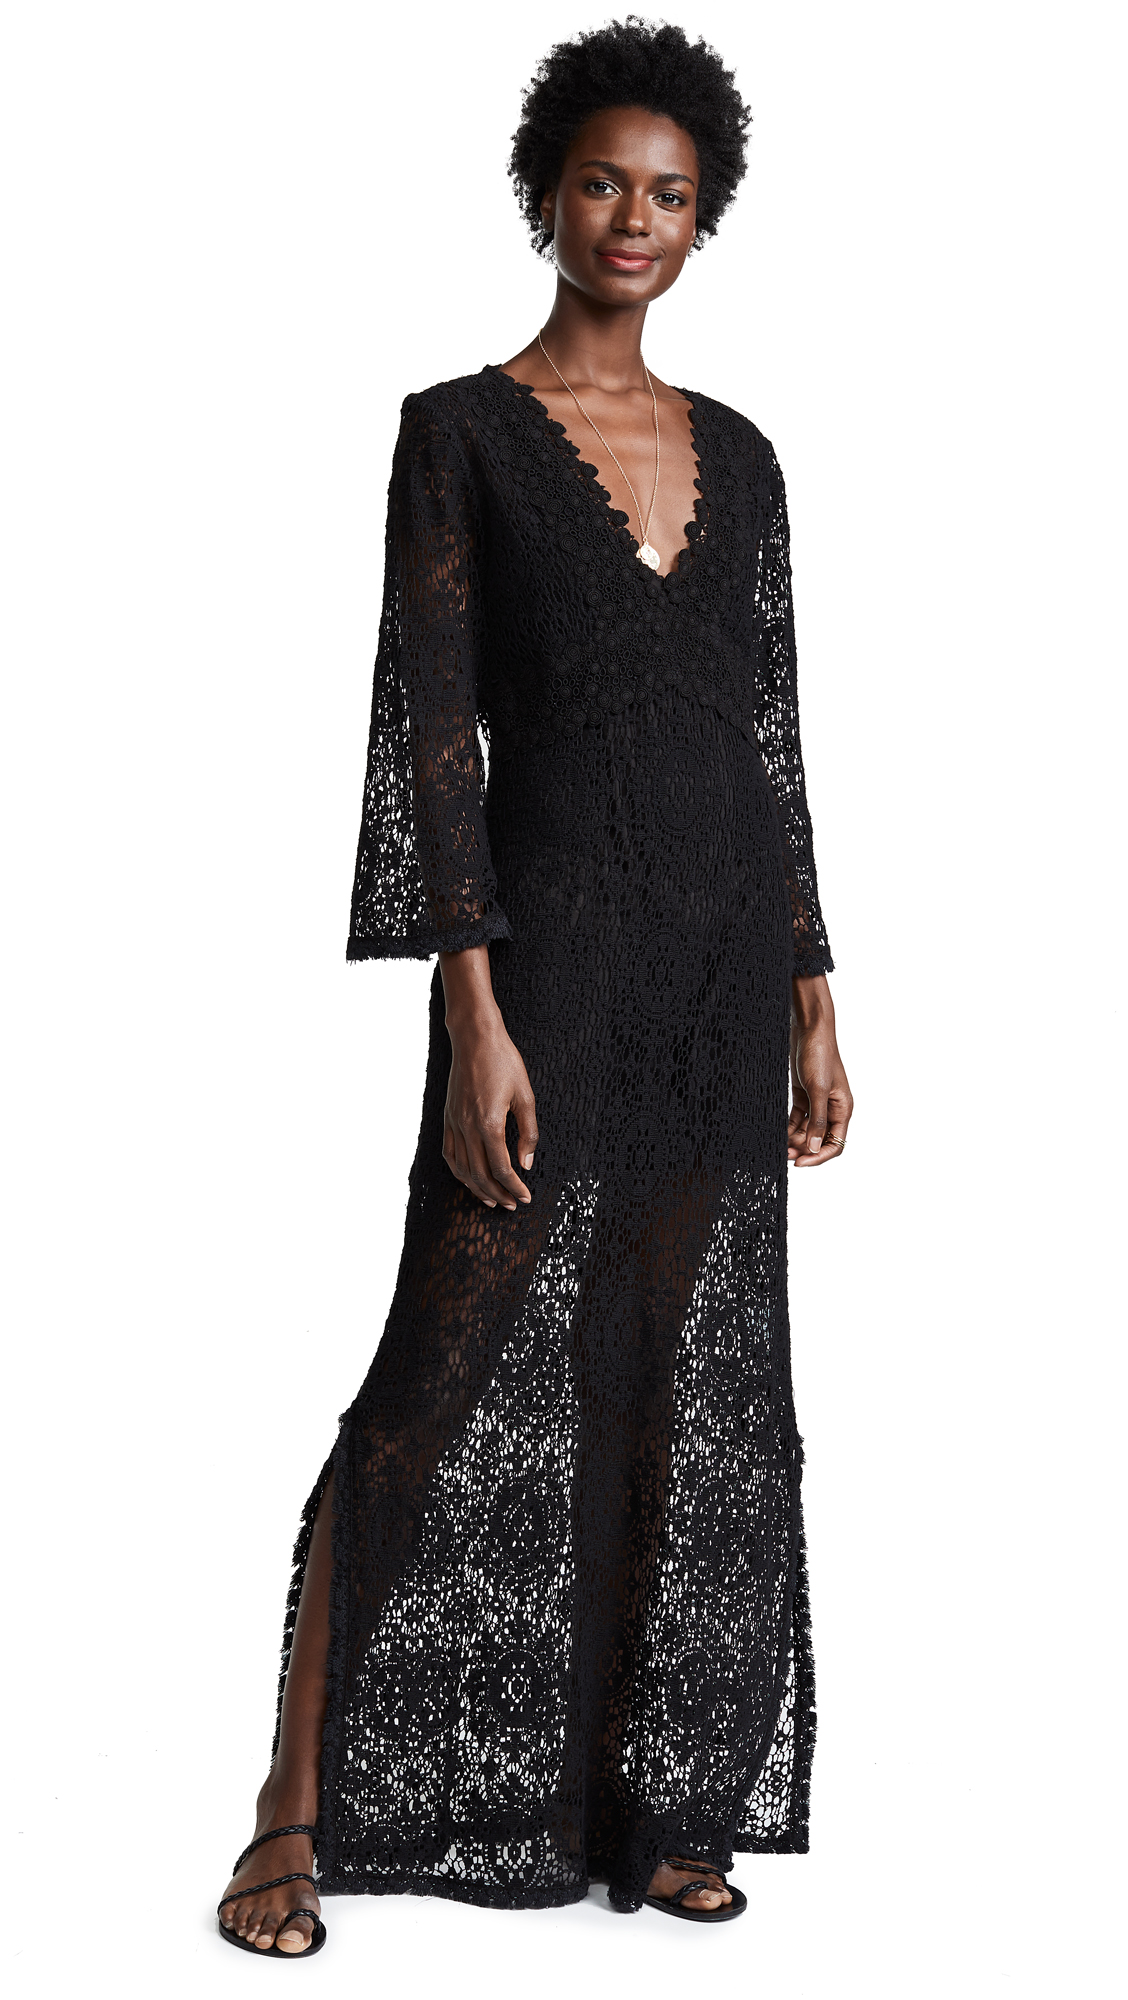 Temptation Positano Rennel Long Sleeve Crochet Dress - Black